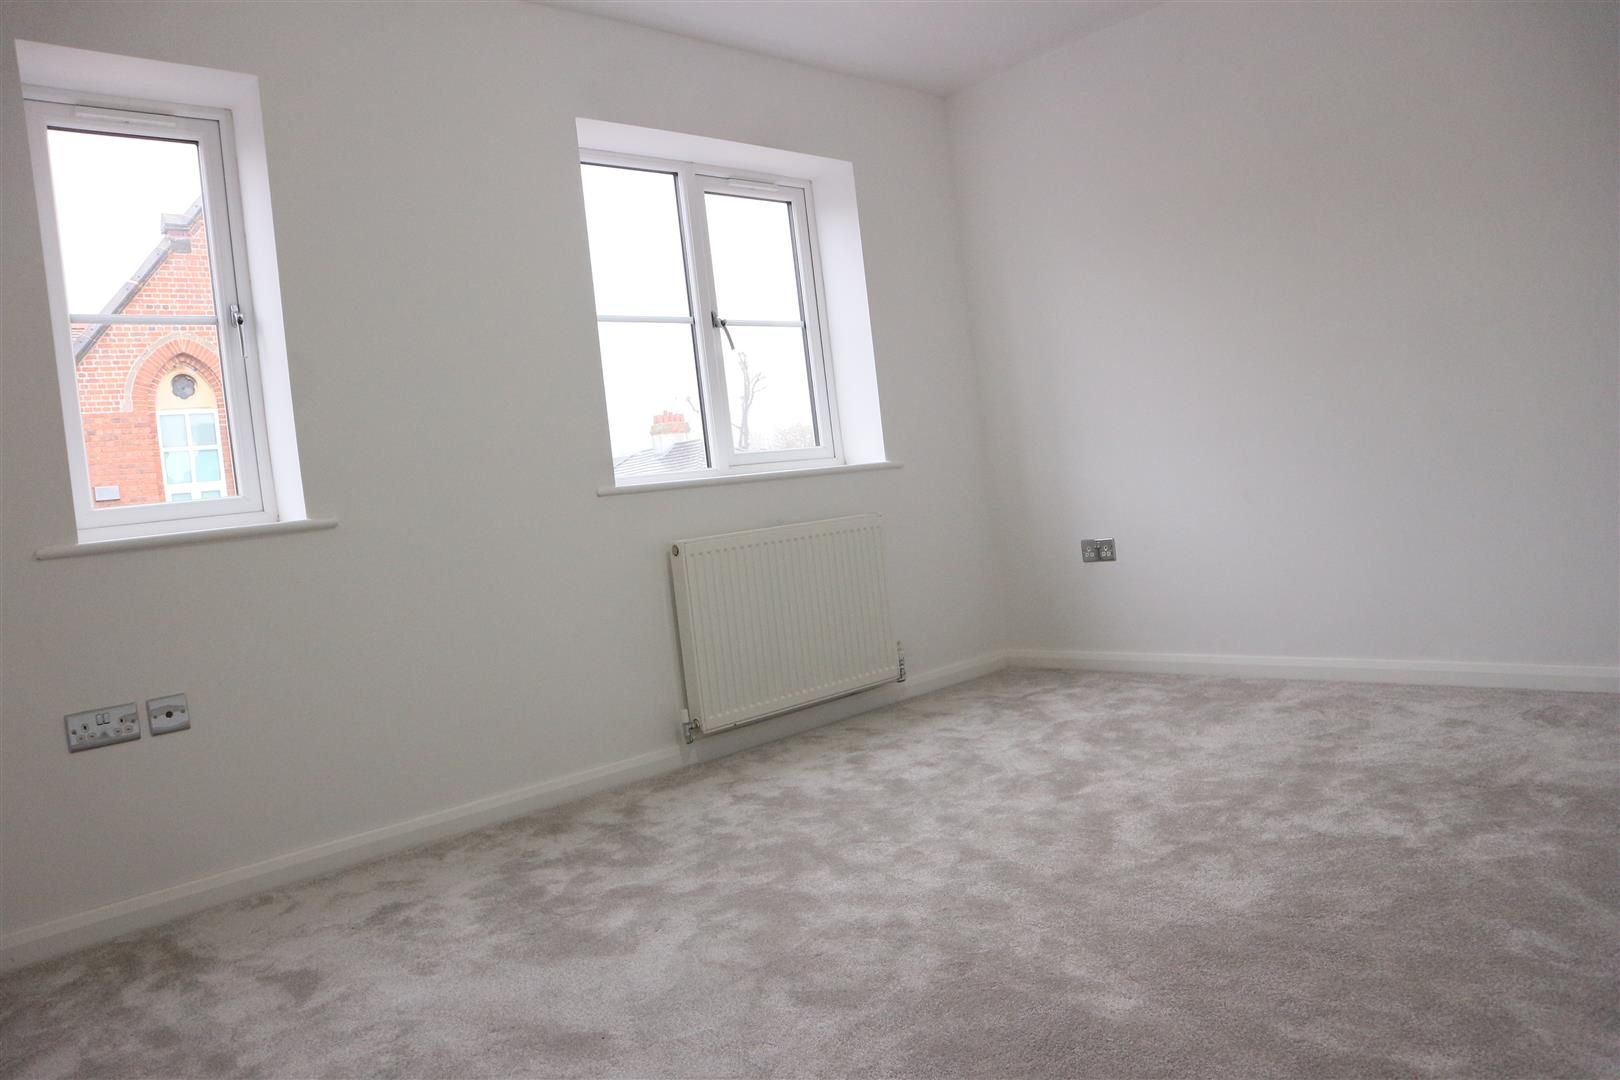 3 bed semi-detached for sale in Netherton  - Property Image 7